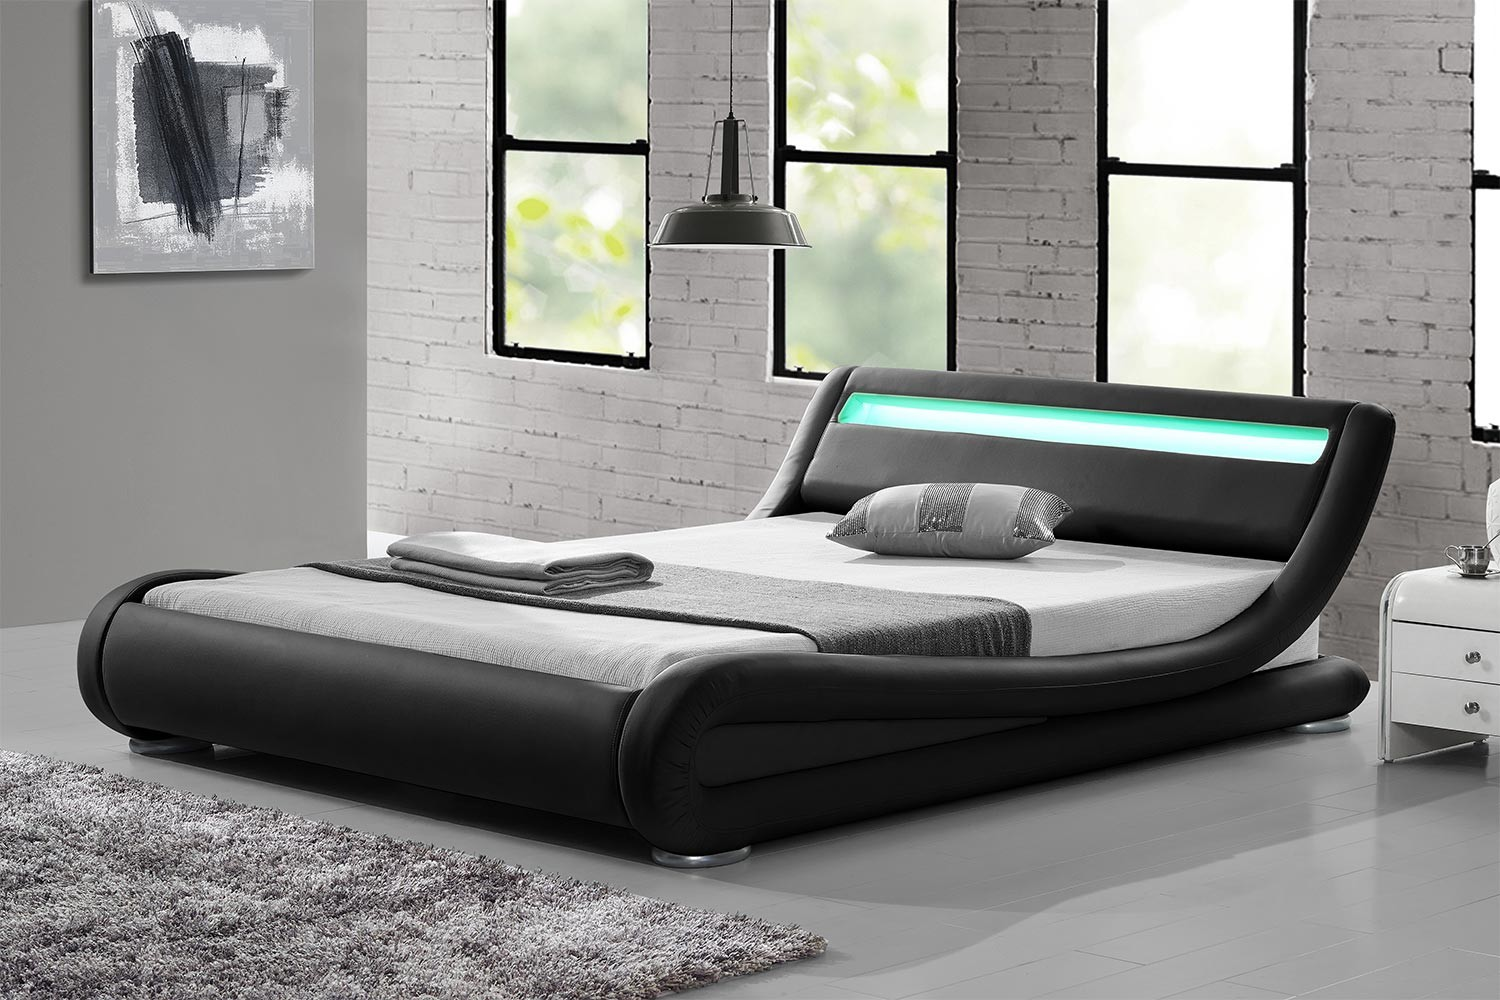 lit chicago structure de lit simili noir avec led int gr es 160x200 cm. Black Bedroom Furniture Sets. Home Design Ideas